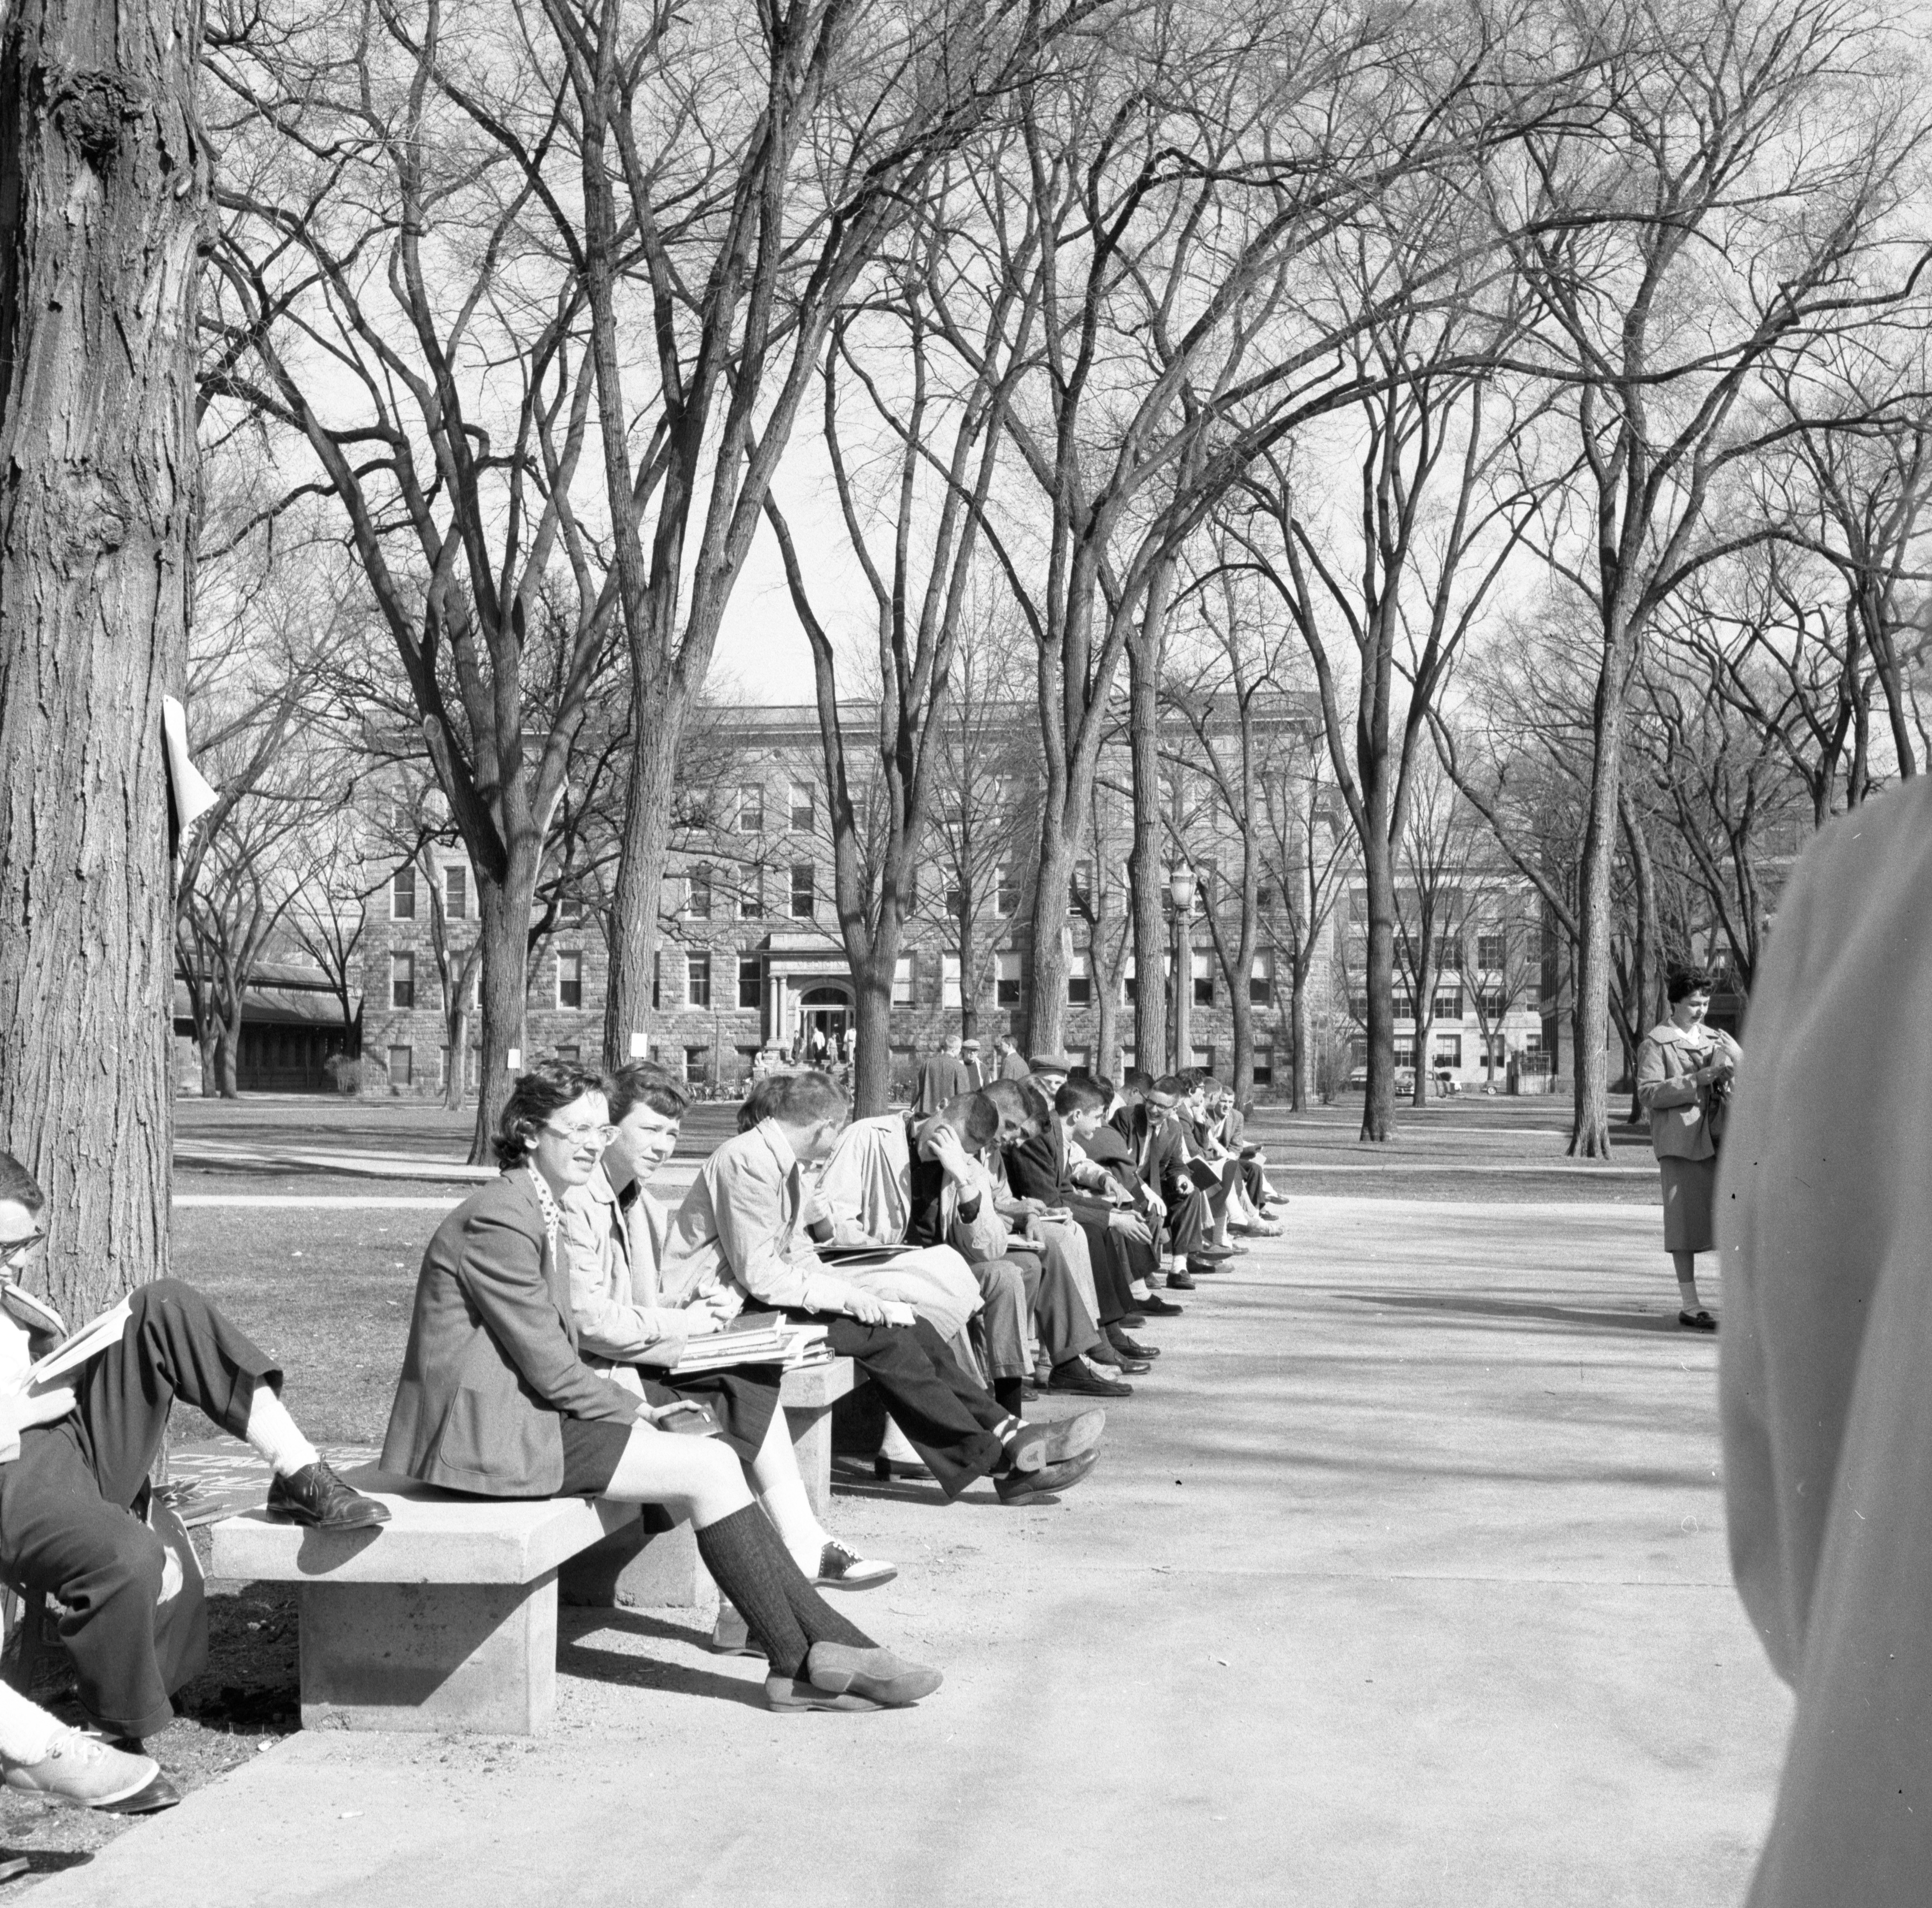 University of Michigan Students On The Diag, March 1957 image